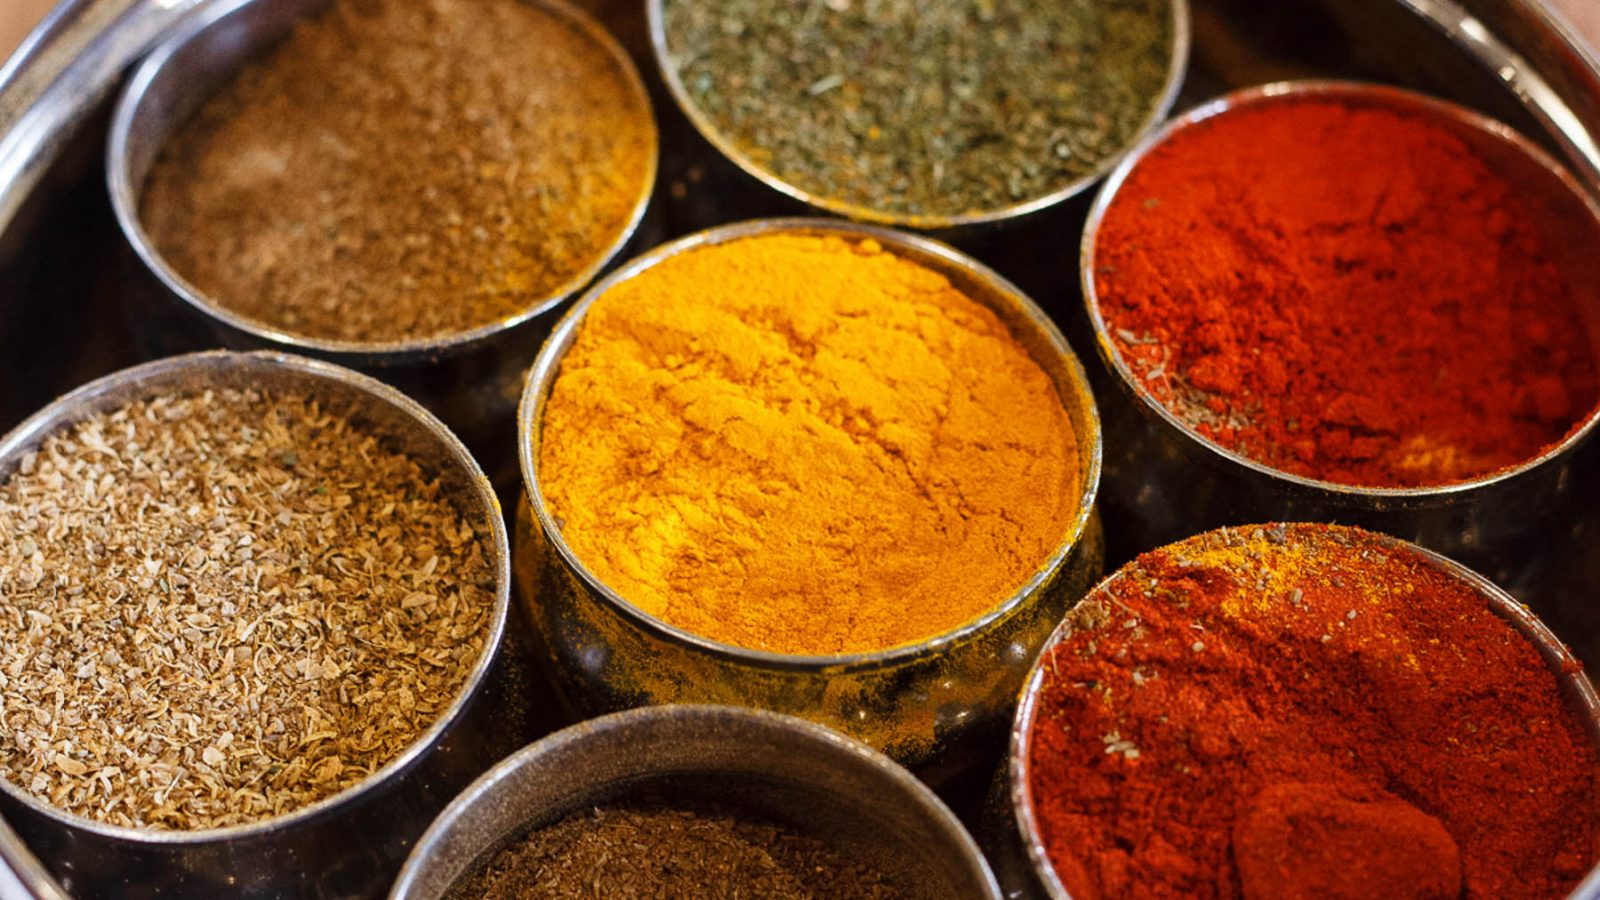 Fresh ground spices